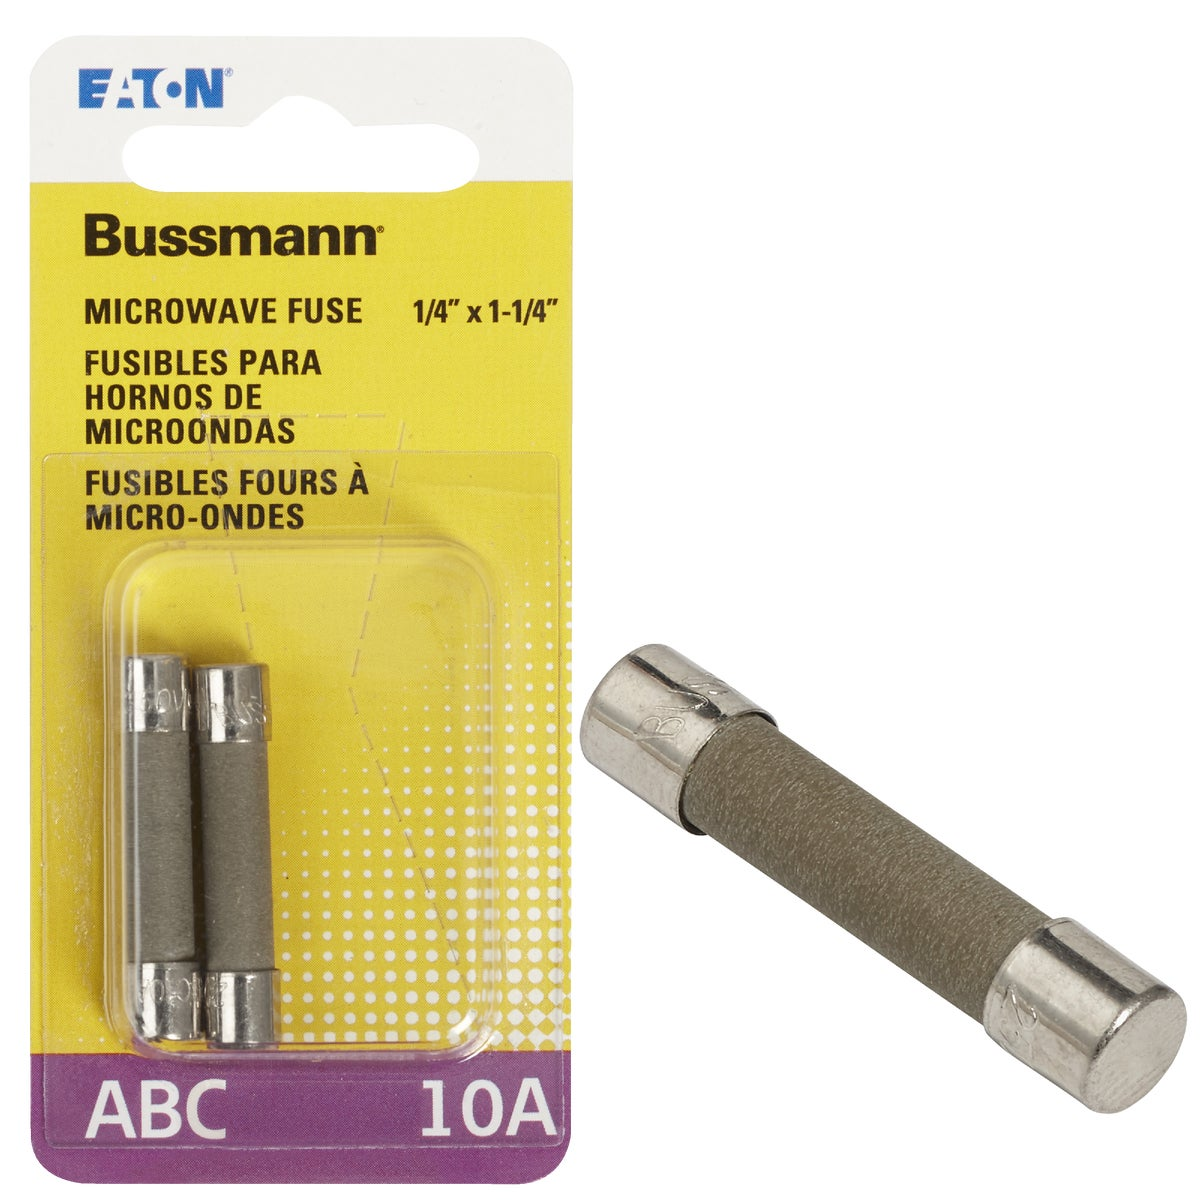 2CD 10A ELECTRONIC FUSE